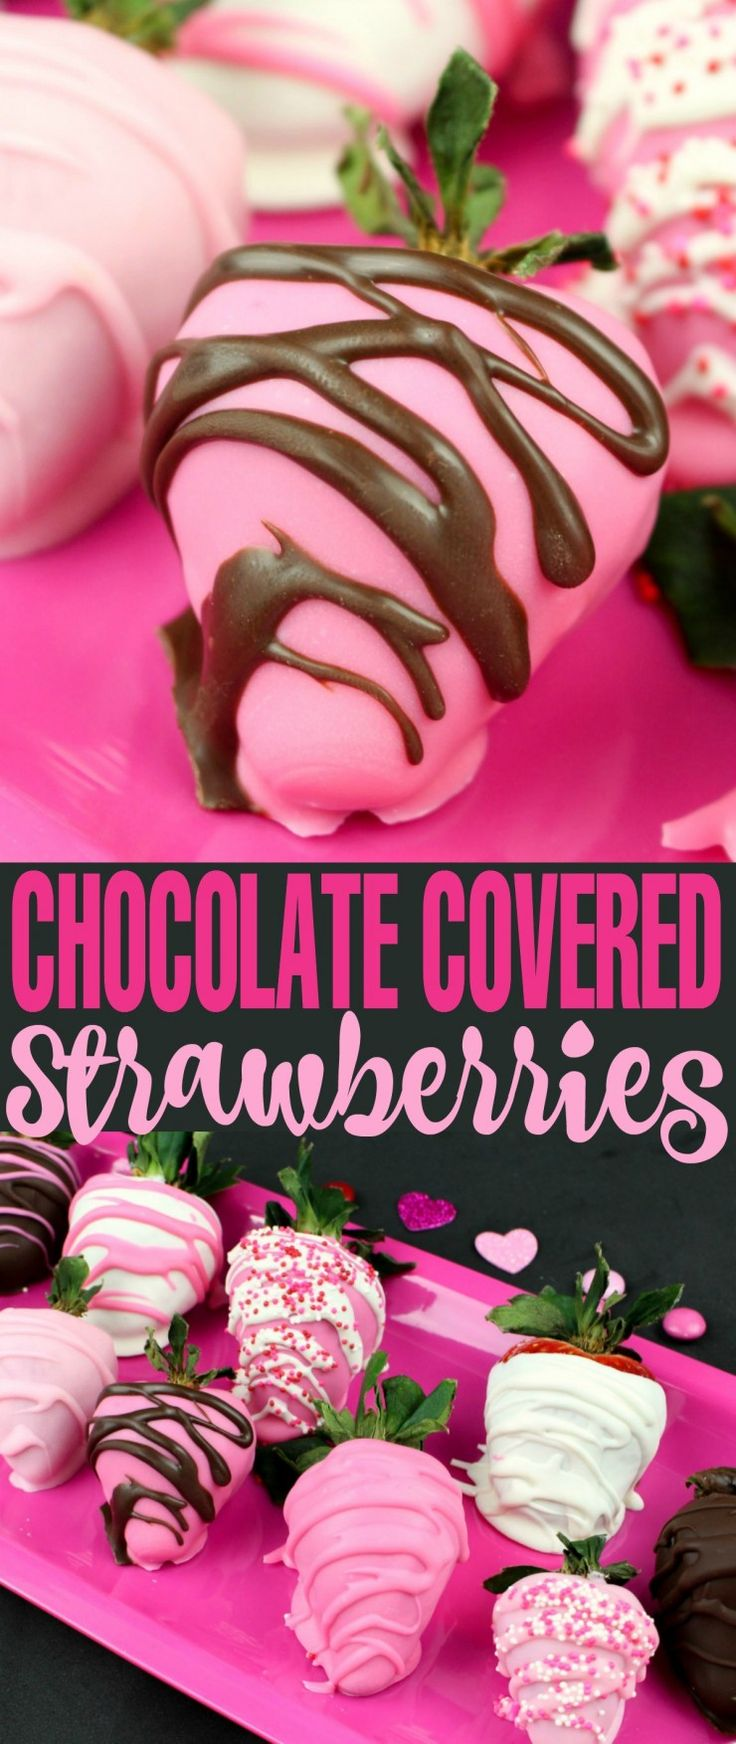 Best 25 chocolate covered strawberries ideas on pinterest this valentines day chocolate covered strawberries recipe is an easy way to make this romantic and pretty treat at home baking ideas to sell negle Choice Image